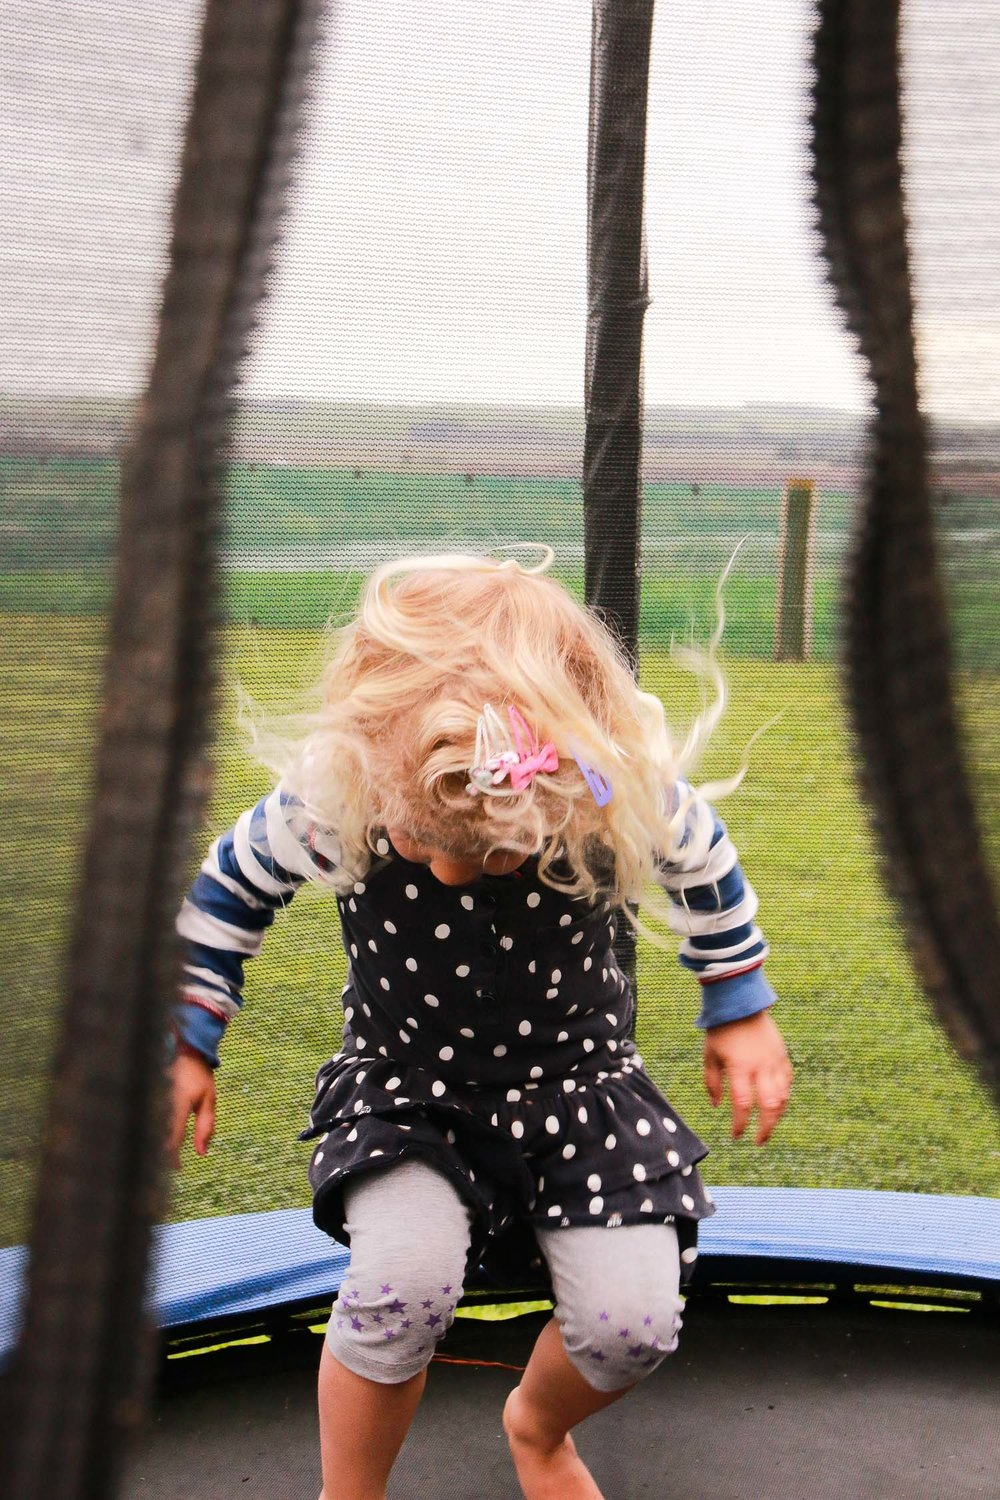 girl-jumping-on-trampoline.jpg